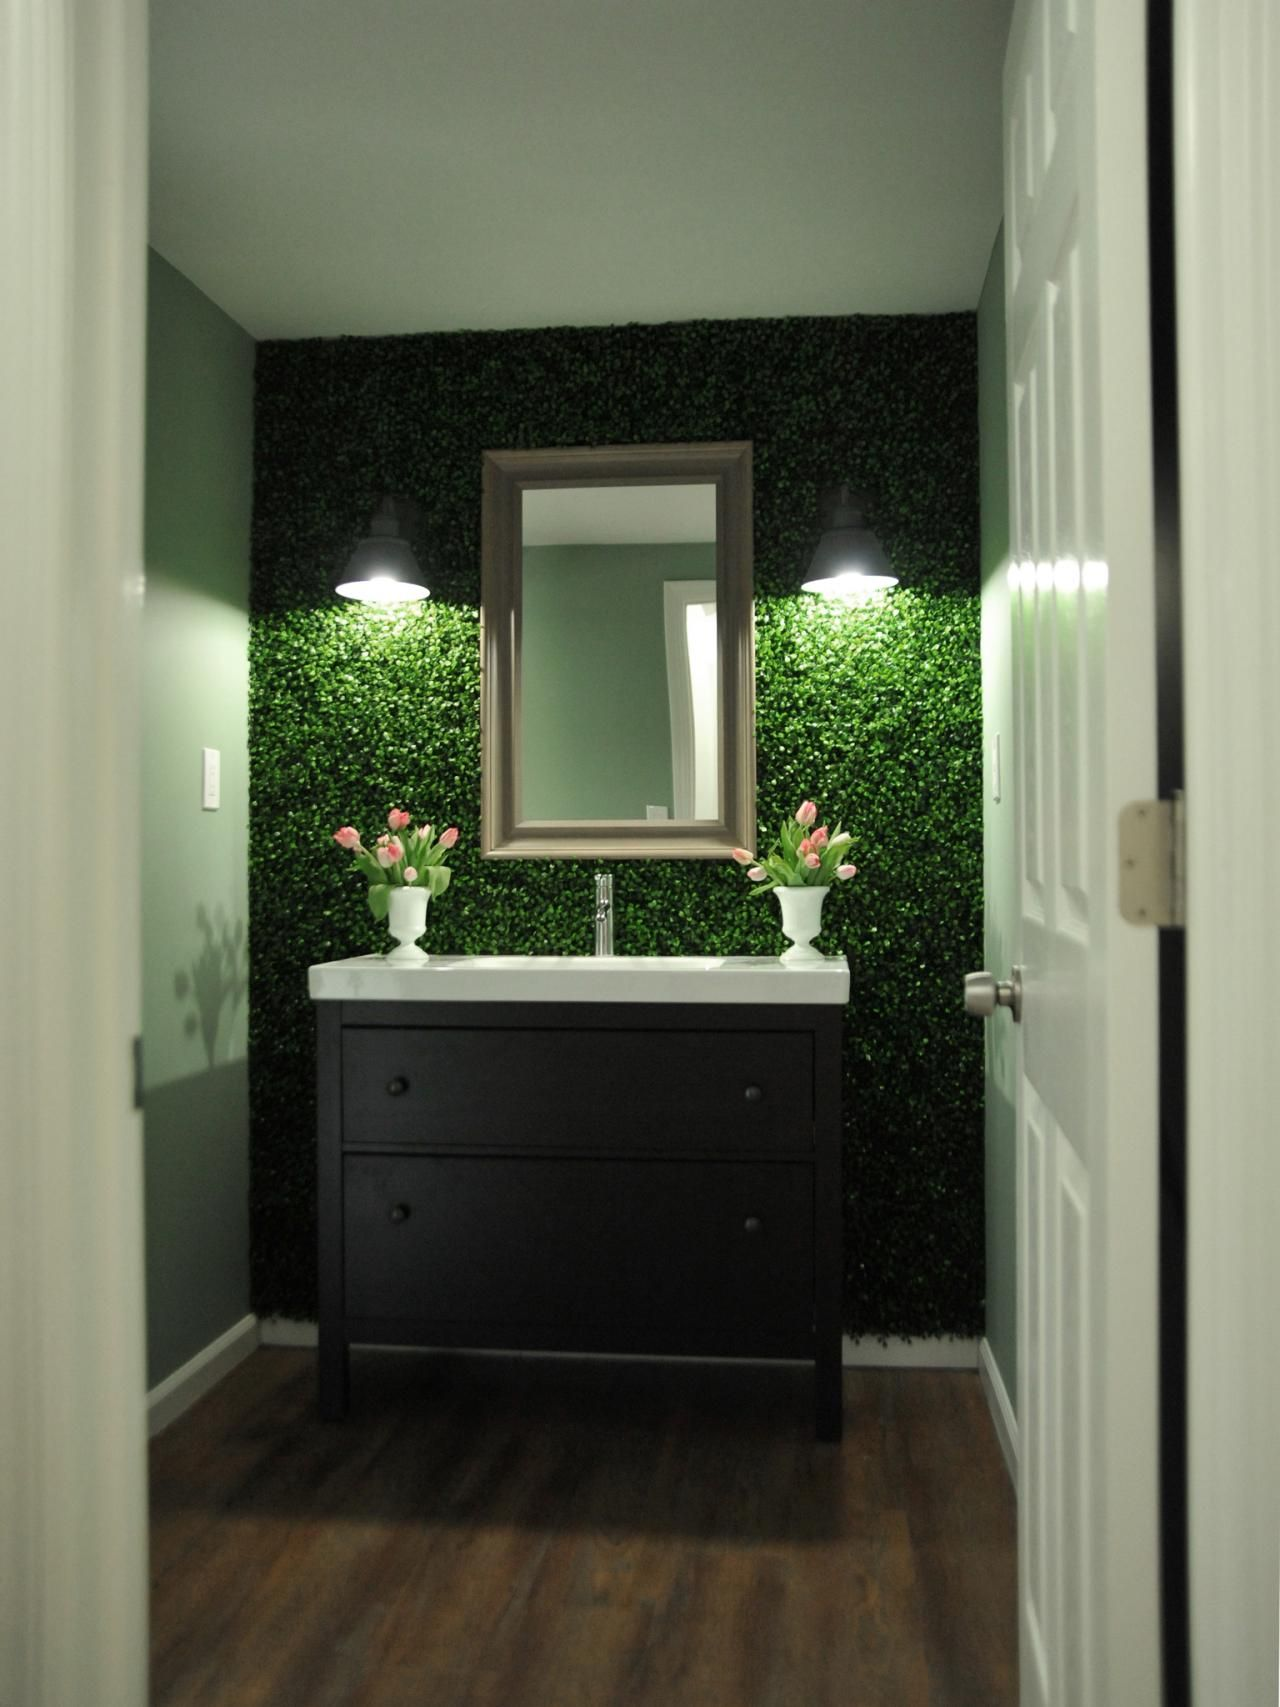 eclectic green bathroom with plant wall green bathroom on interior using artificial boxwood panels with flowers id=31142